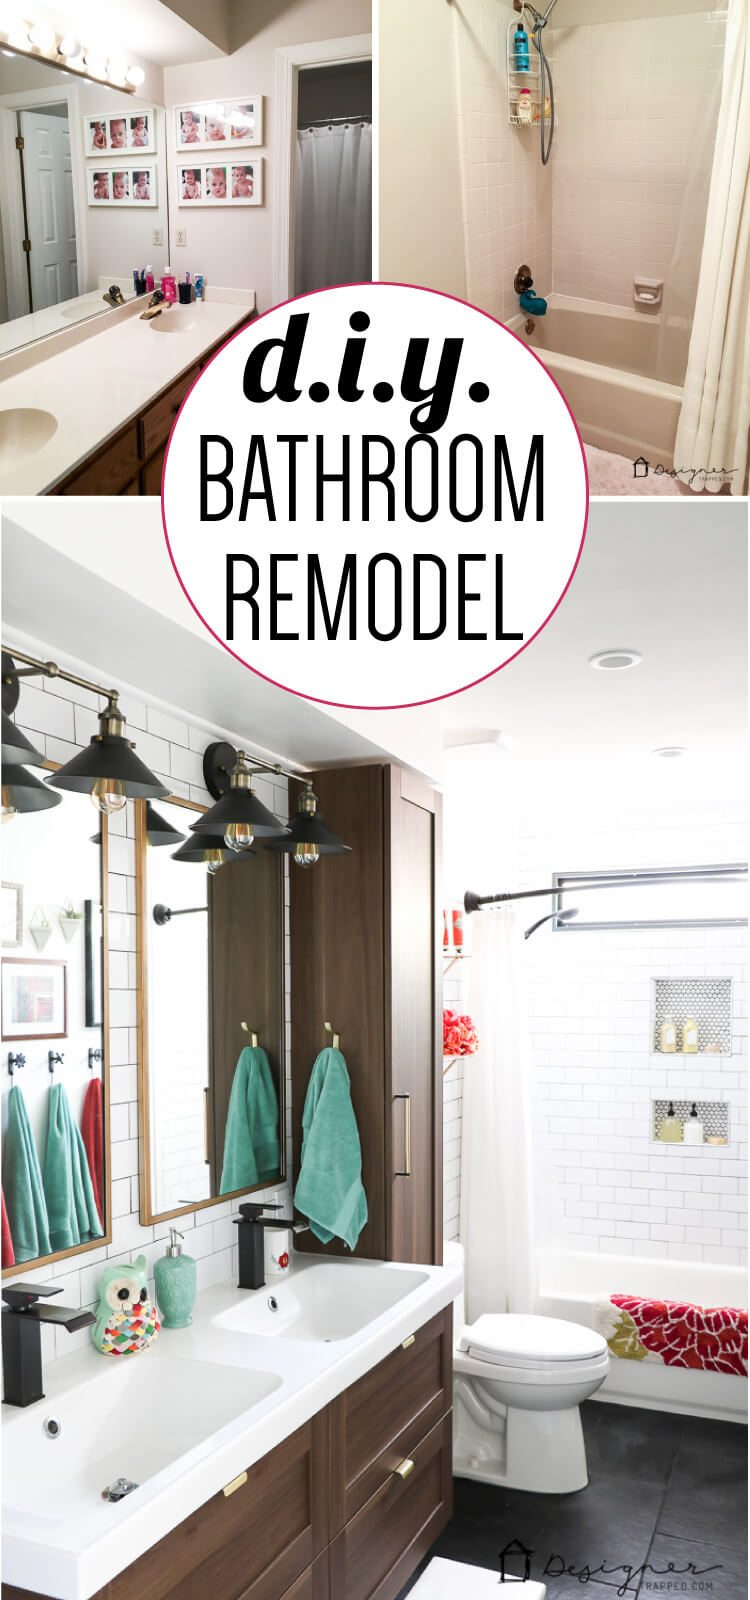 this diy bathroom remodel is by far one of the